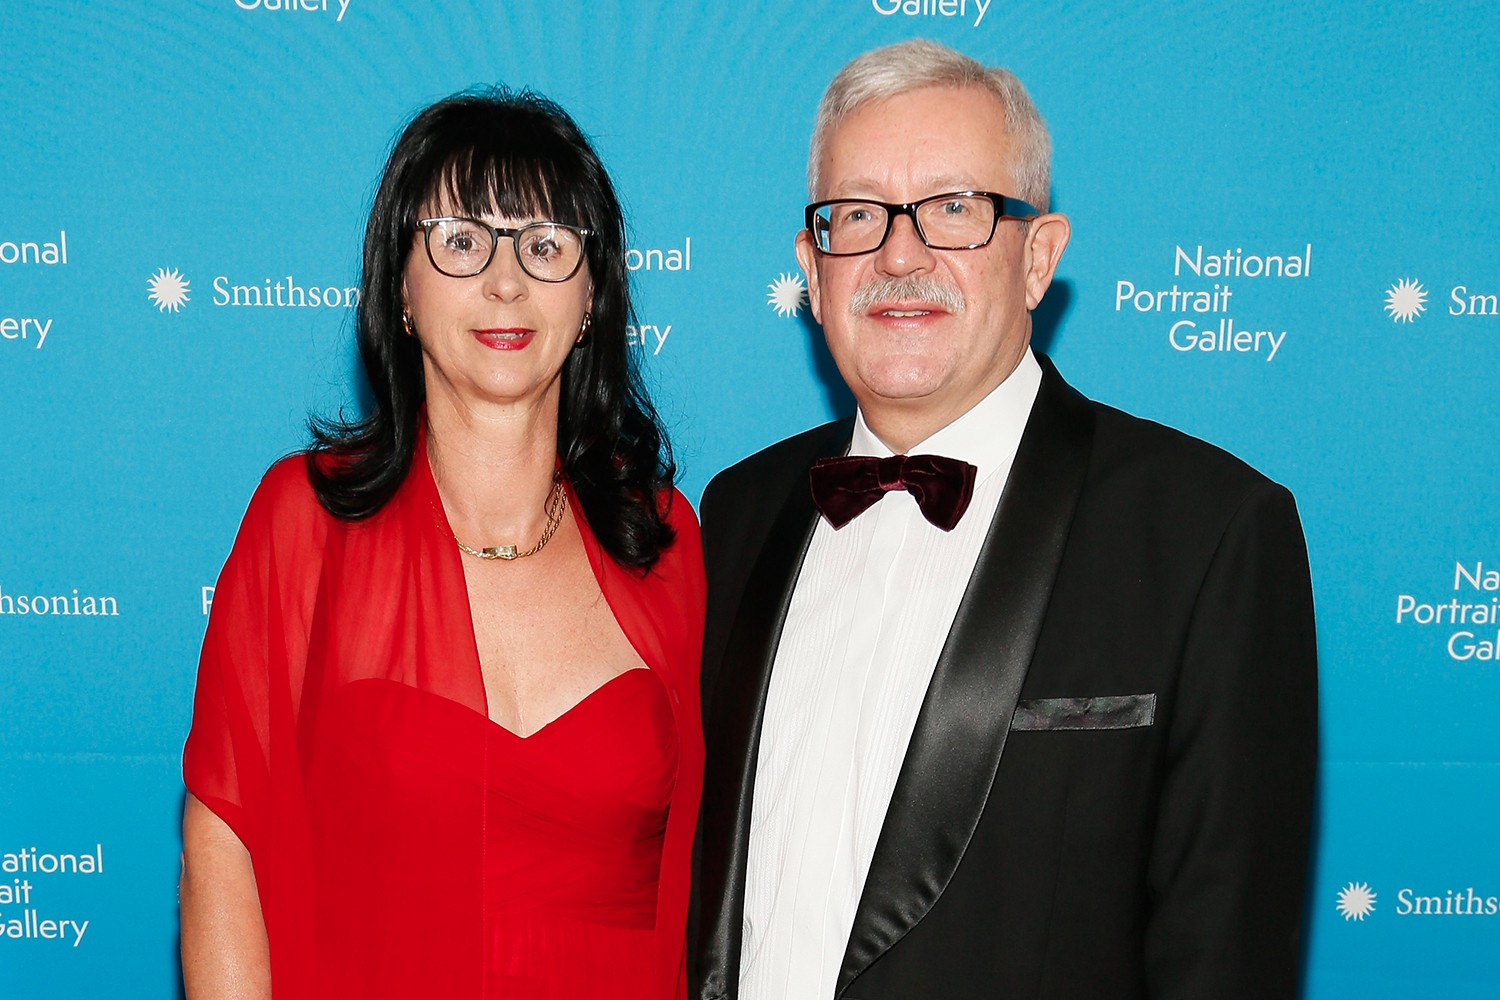 Image result for MARTIN DAHINDEN, AMBASSADOR OF SWITZERLAND AND MRS. ANITA DAHINDEN